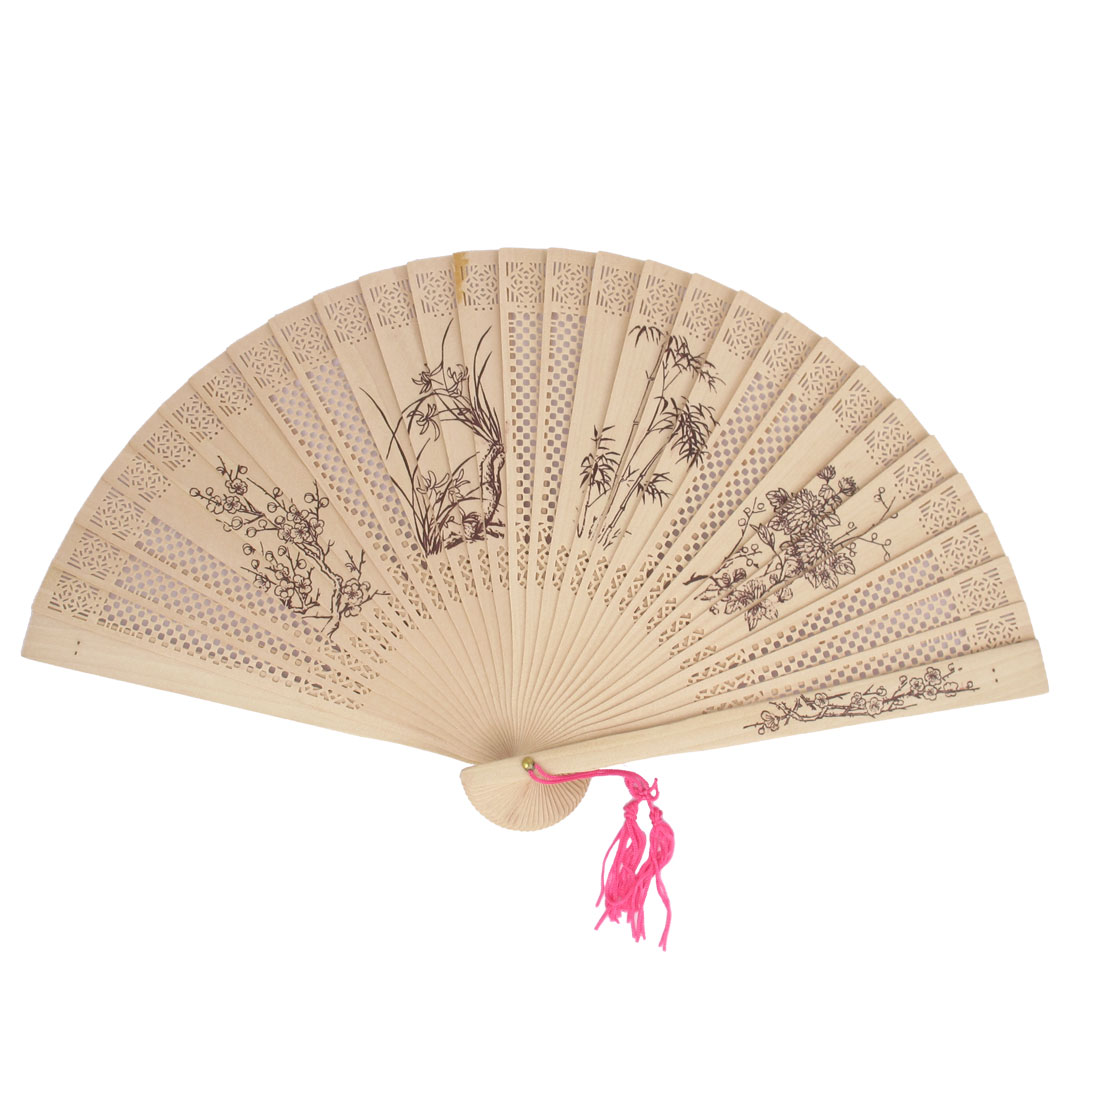 Beige Scented Sandalwood Tradition Wintersweet Bamboo Orchid Chrysanthemum Pattern Hollow Carved Folding Hand Fan